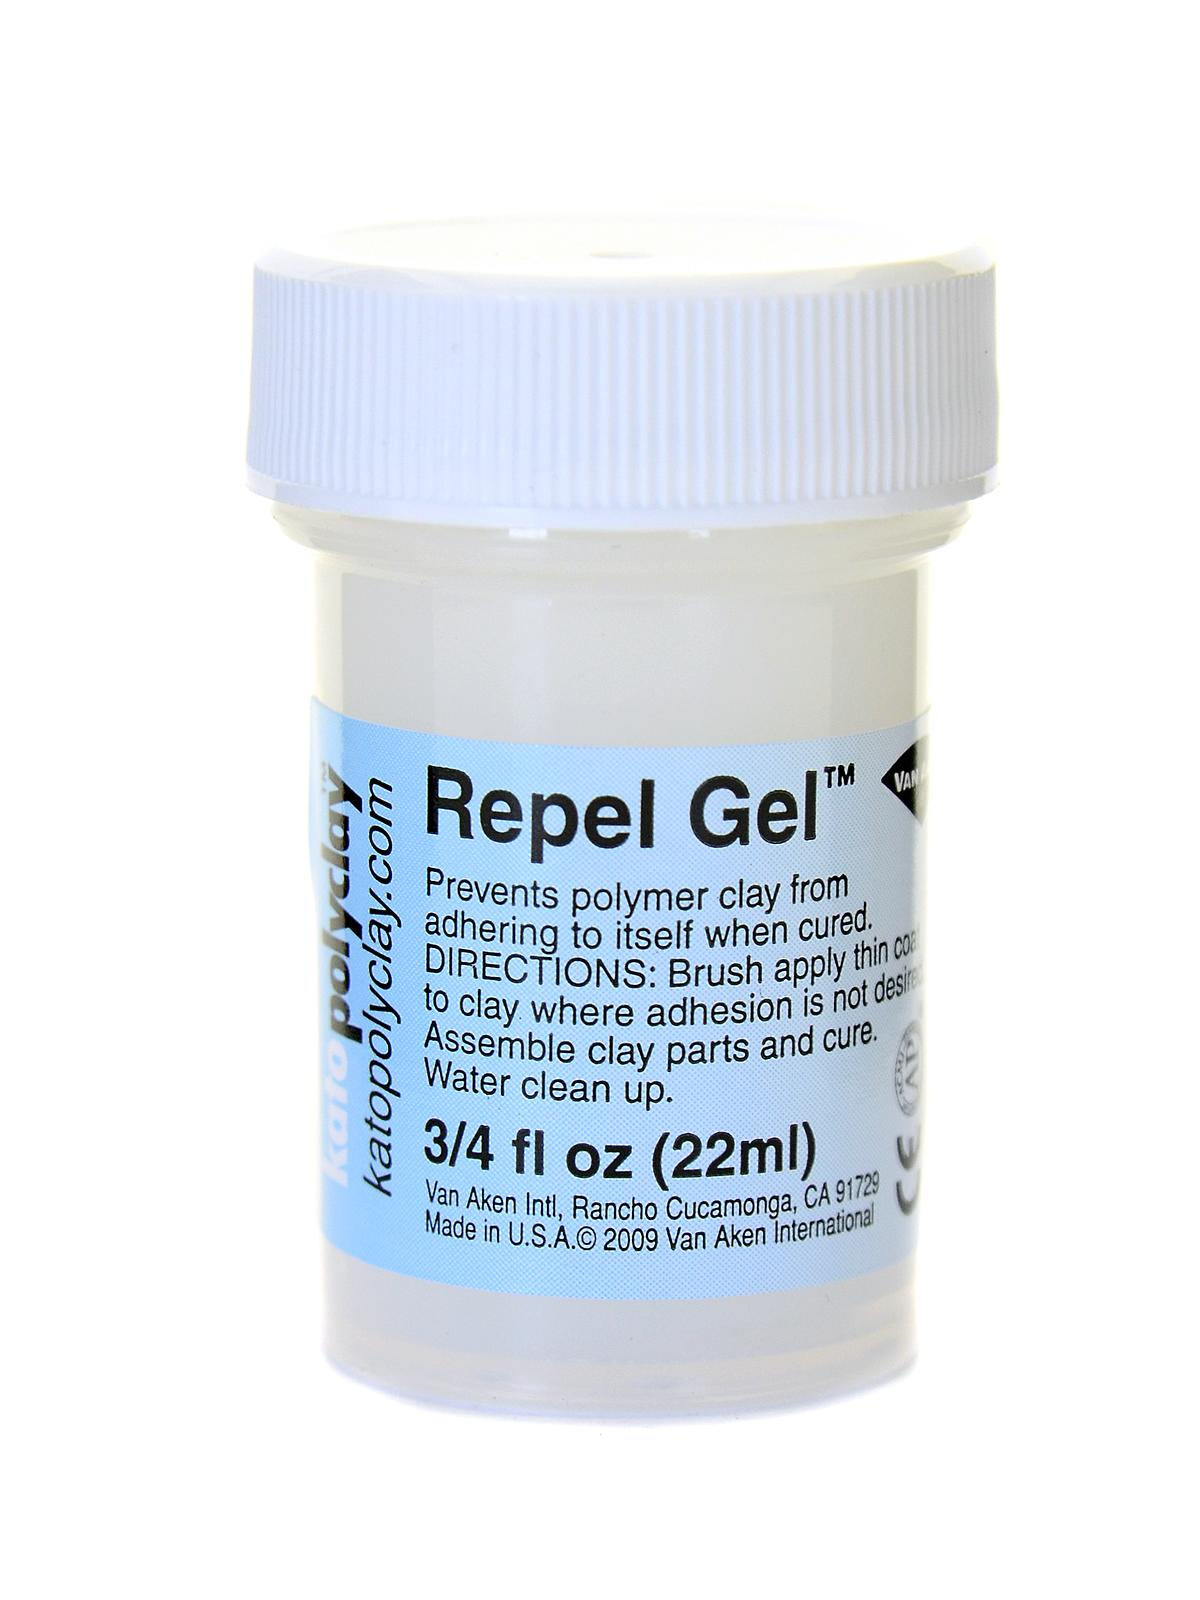 Repel Gel